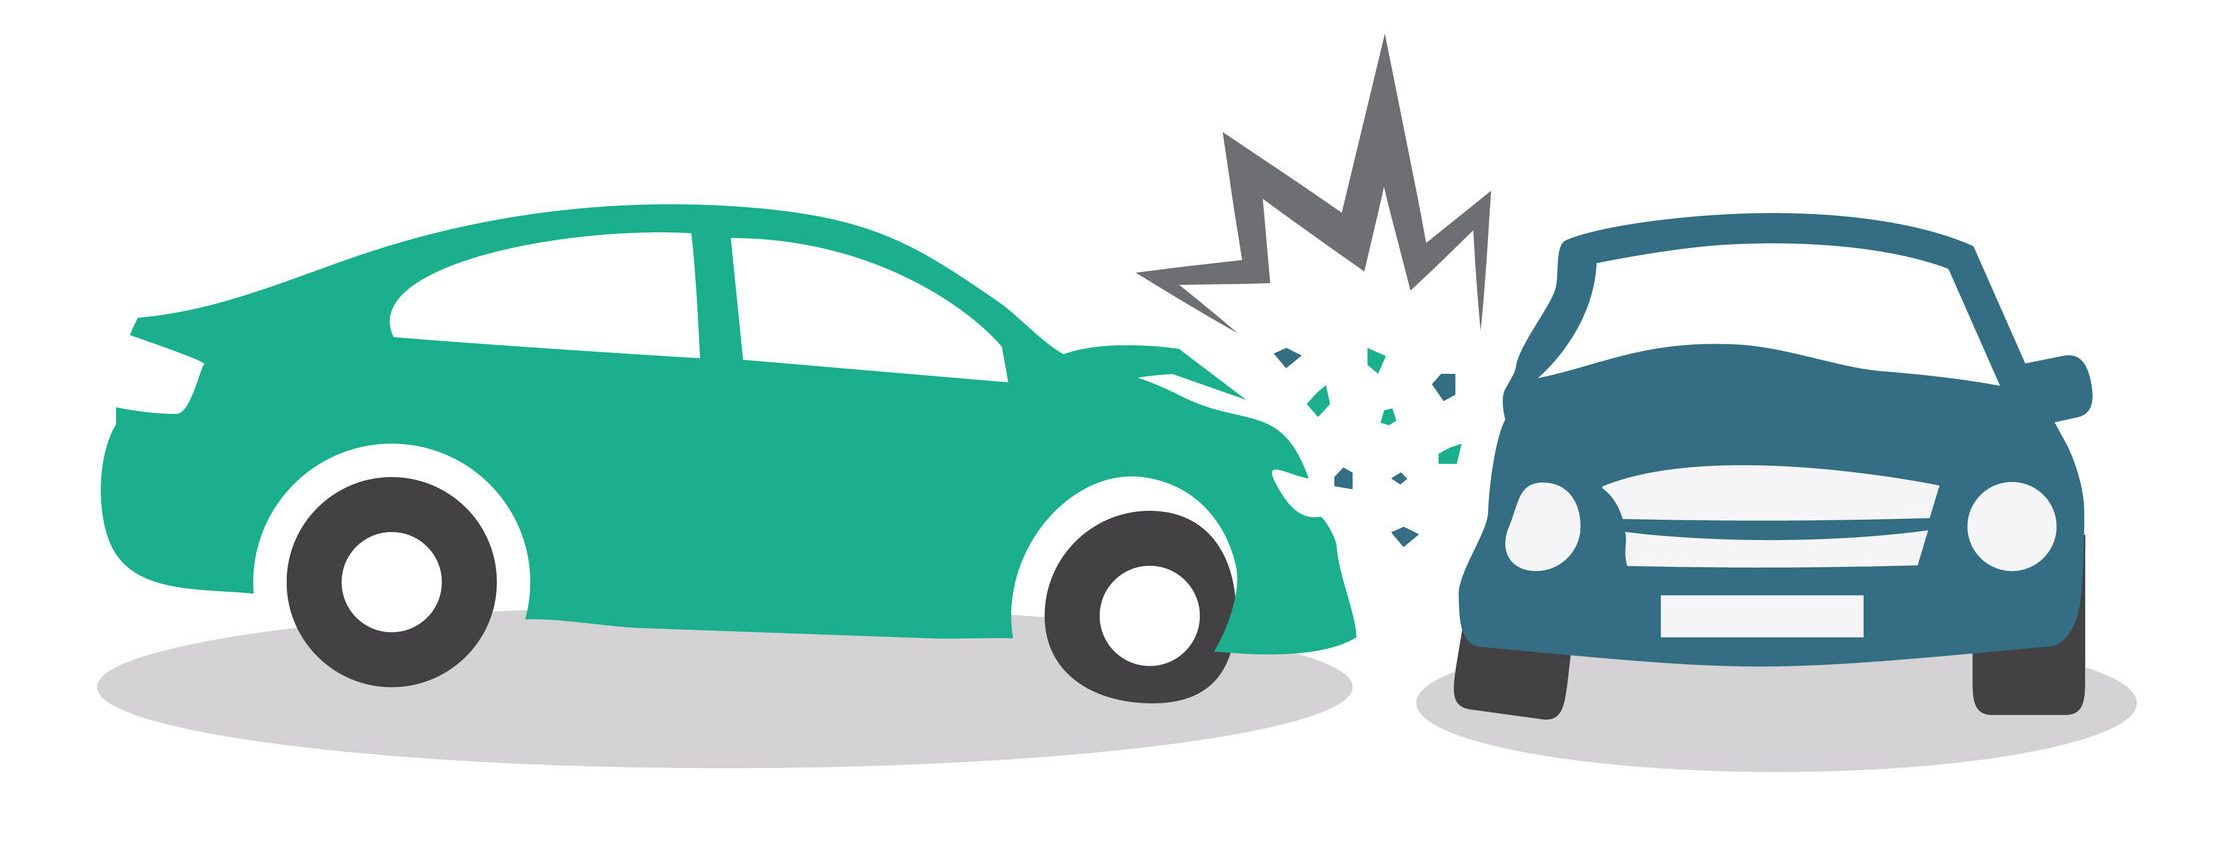 The General Insurance Association says the value of motor insurance claims fell by 8.5% in 2016, despite the number of accident reports rising by 8% to a five-year high, and the association suspects the spike in private-hire car population to be the reason for this anomaly.